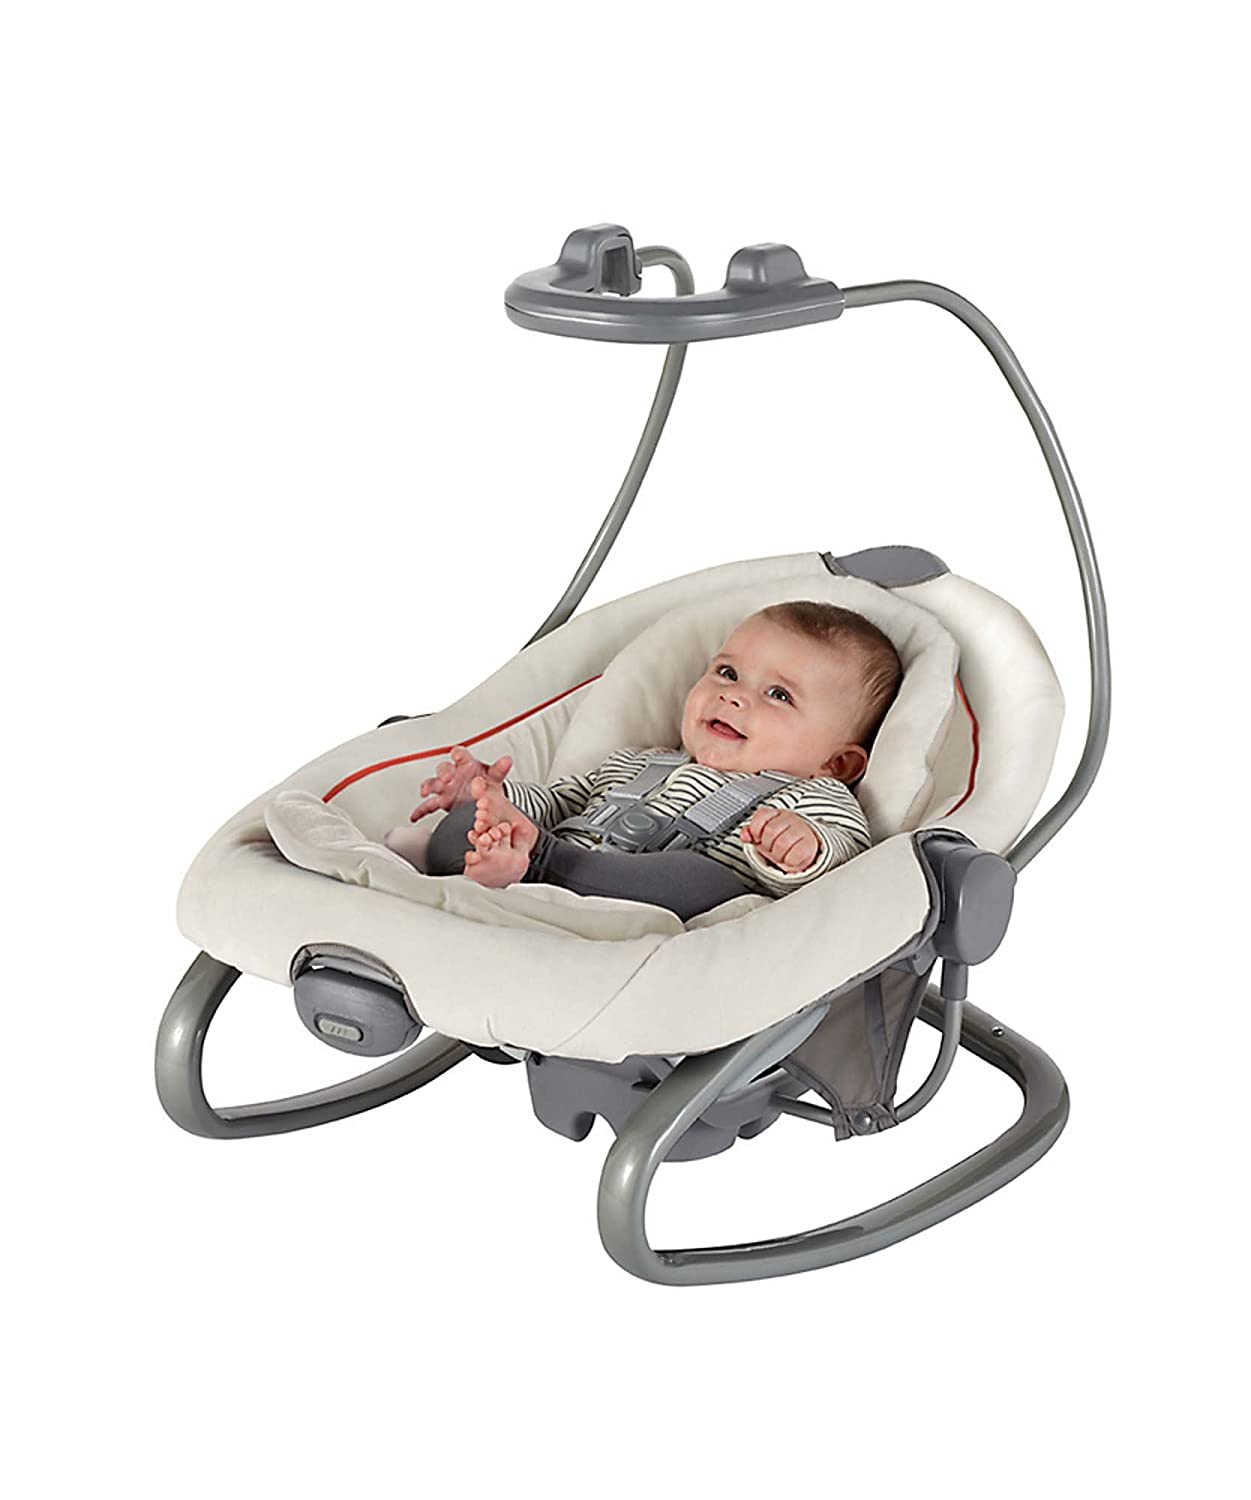 17a426755f33 Amazon.com   Graco Duet Soothe Baby Swing